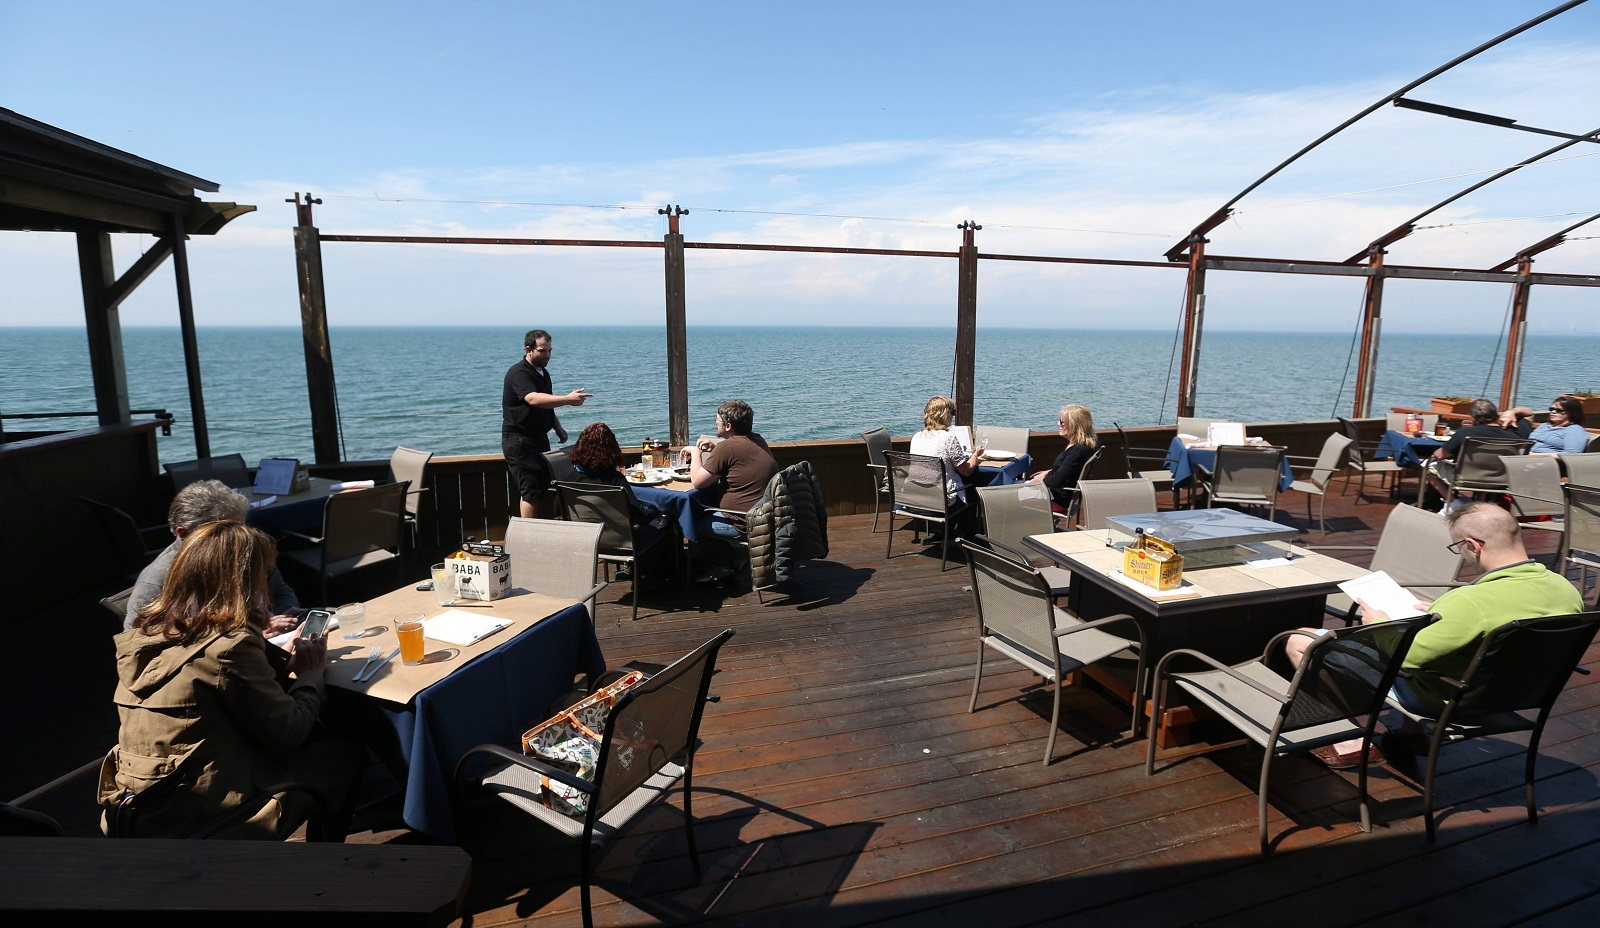 The patio, with a gorgeous view of Lake Erie, is the favorite spot once the weather warms up. (Sharon Cantillon/Buffalo News)